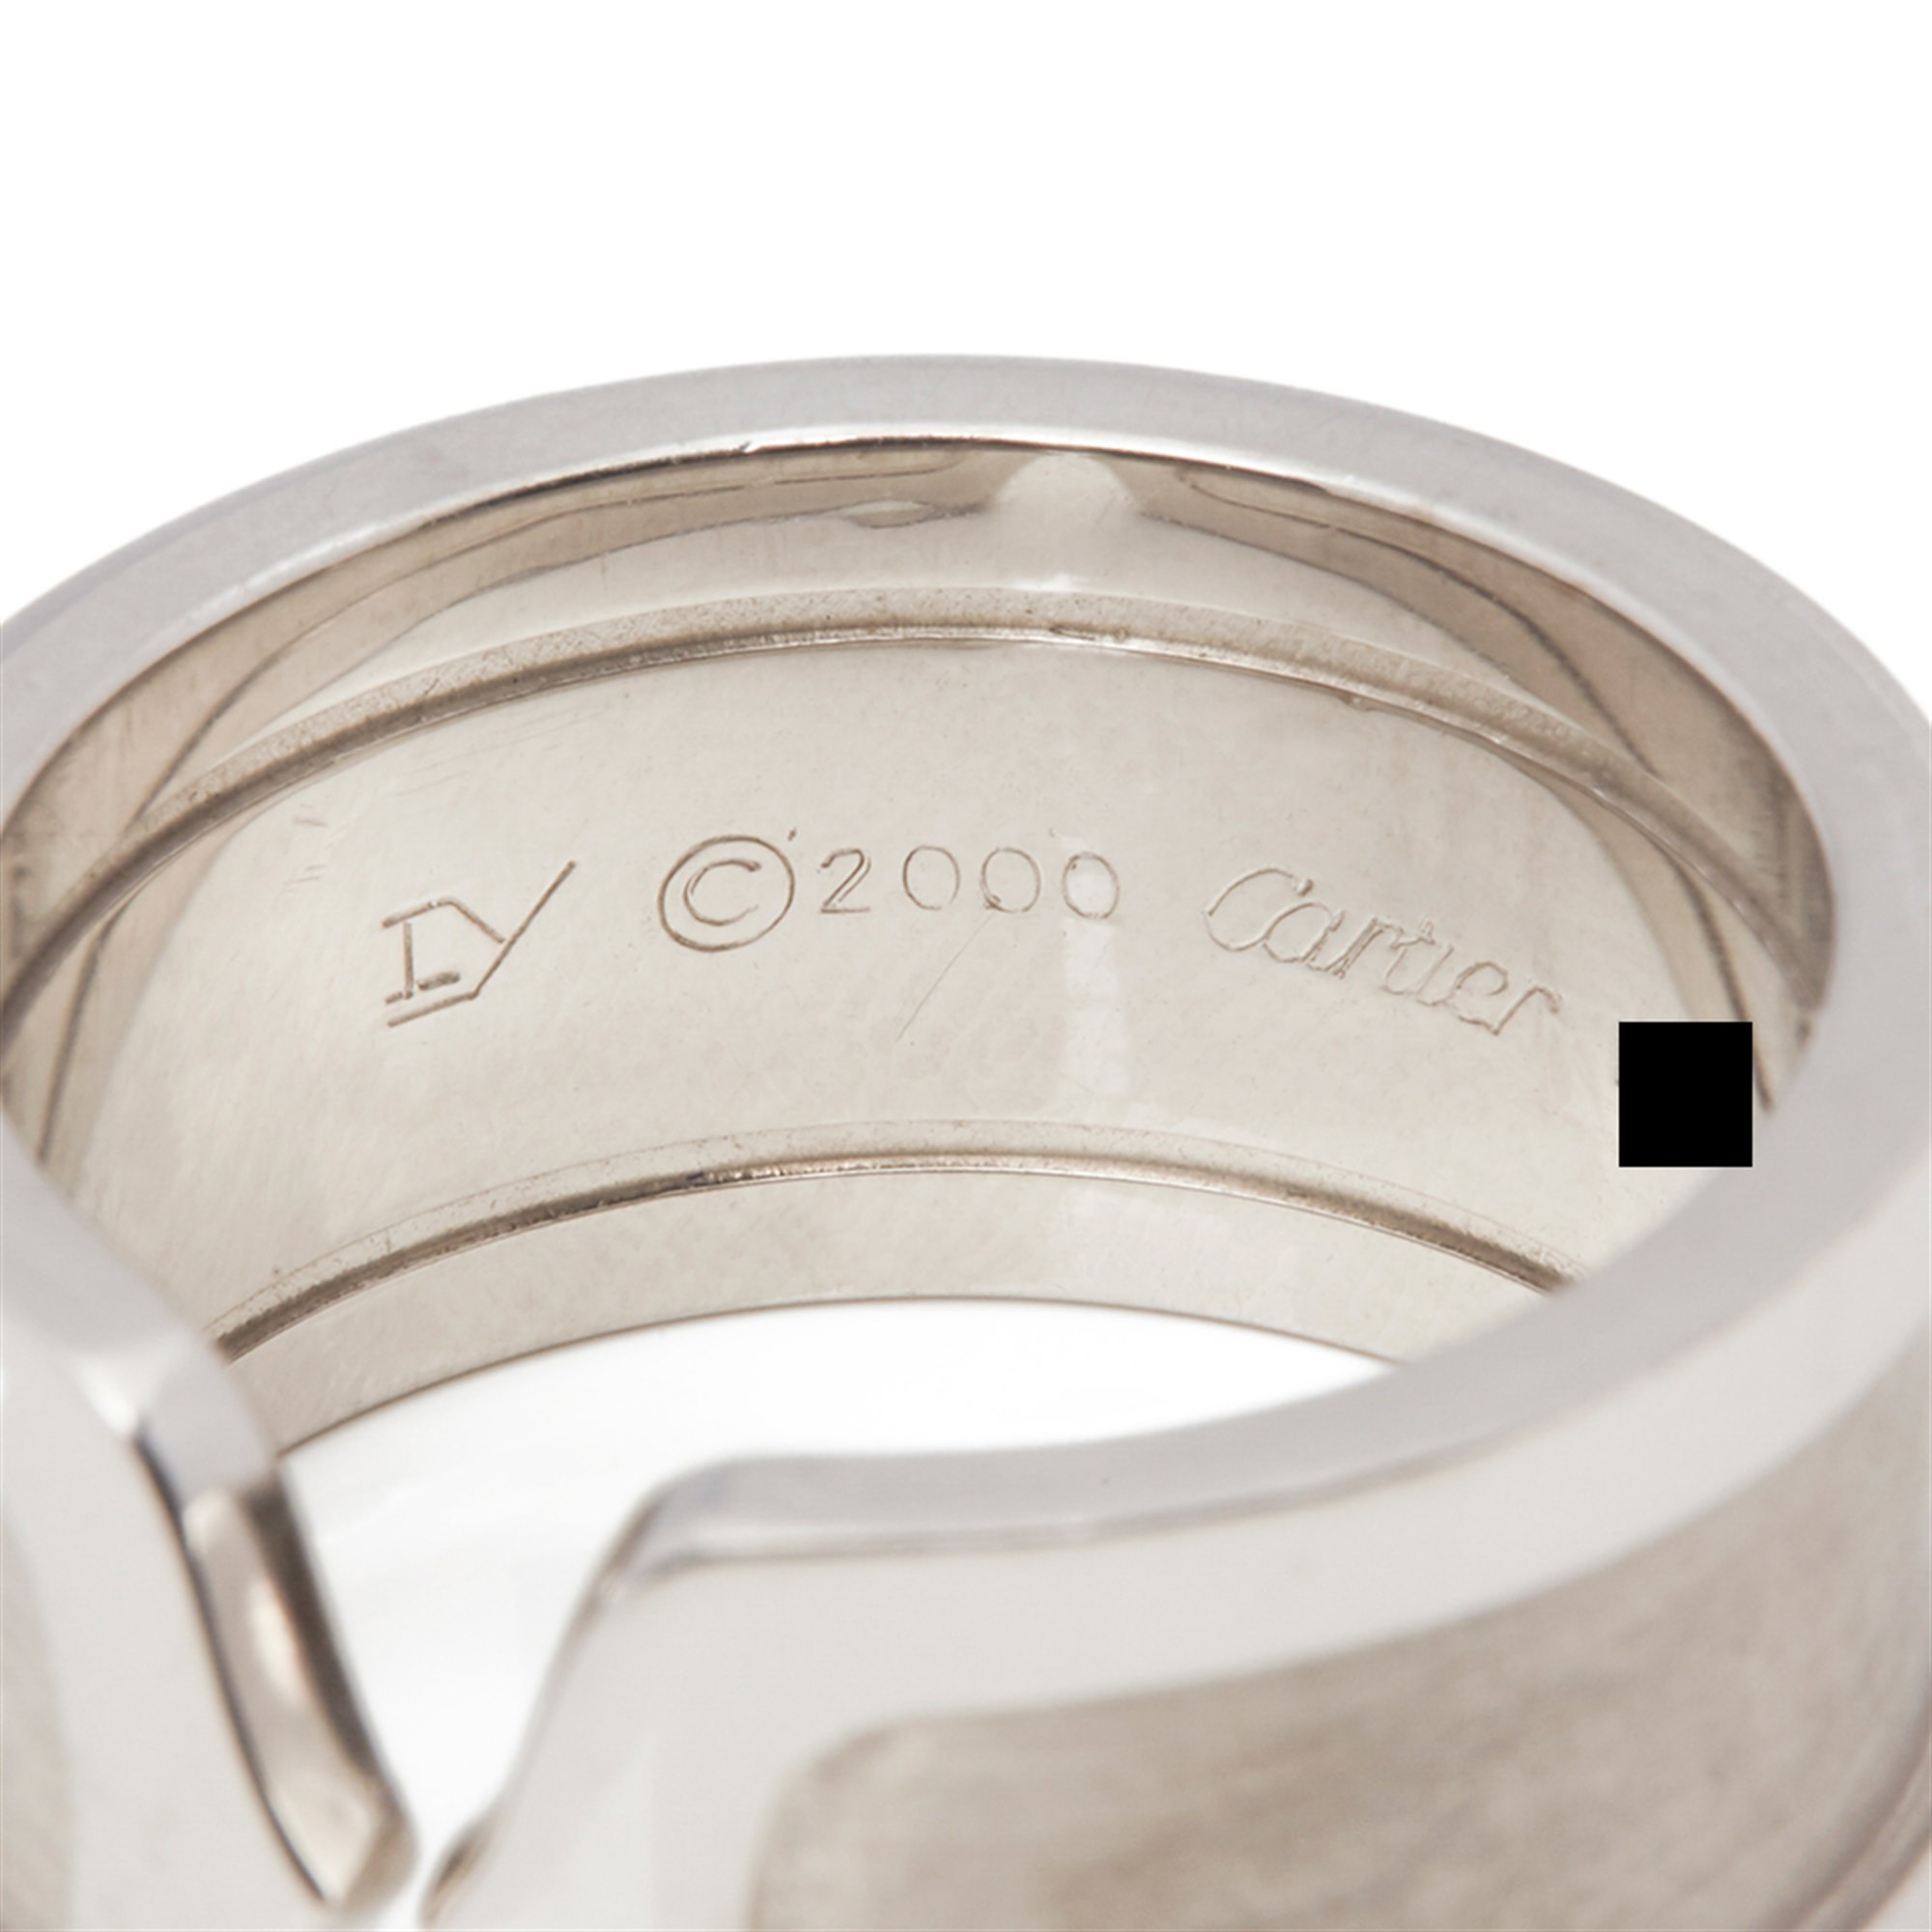 Cartier 18k White Gold C De Cartier Ring